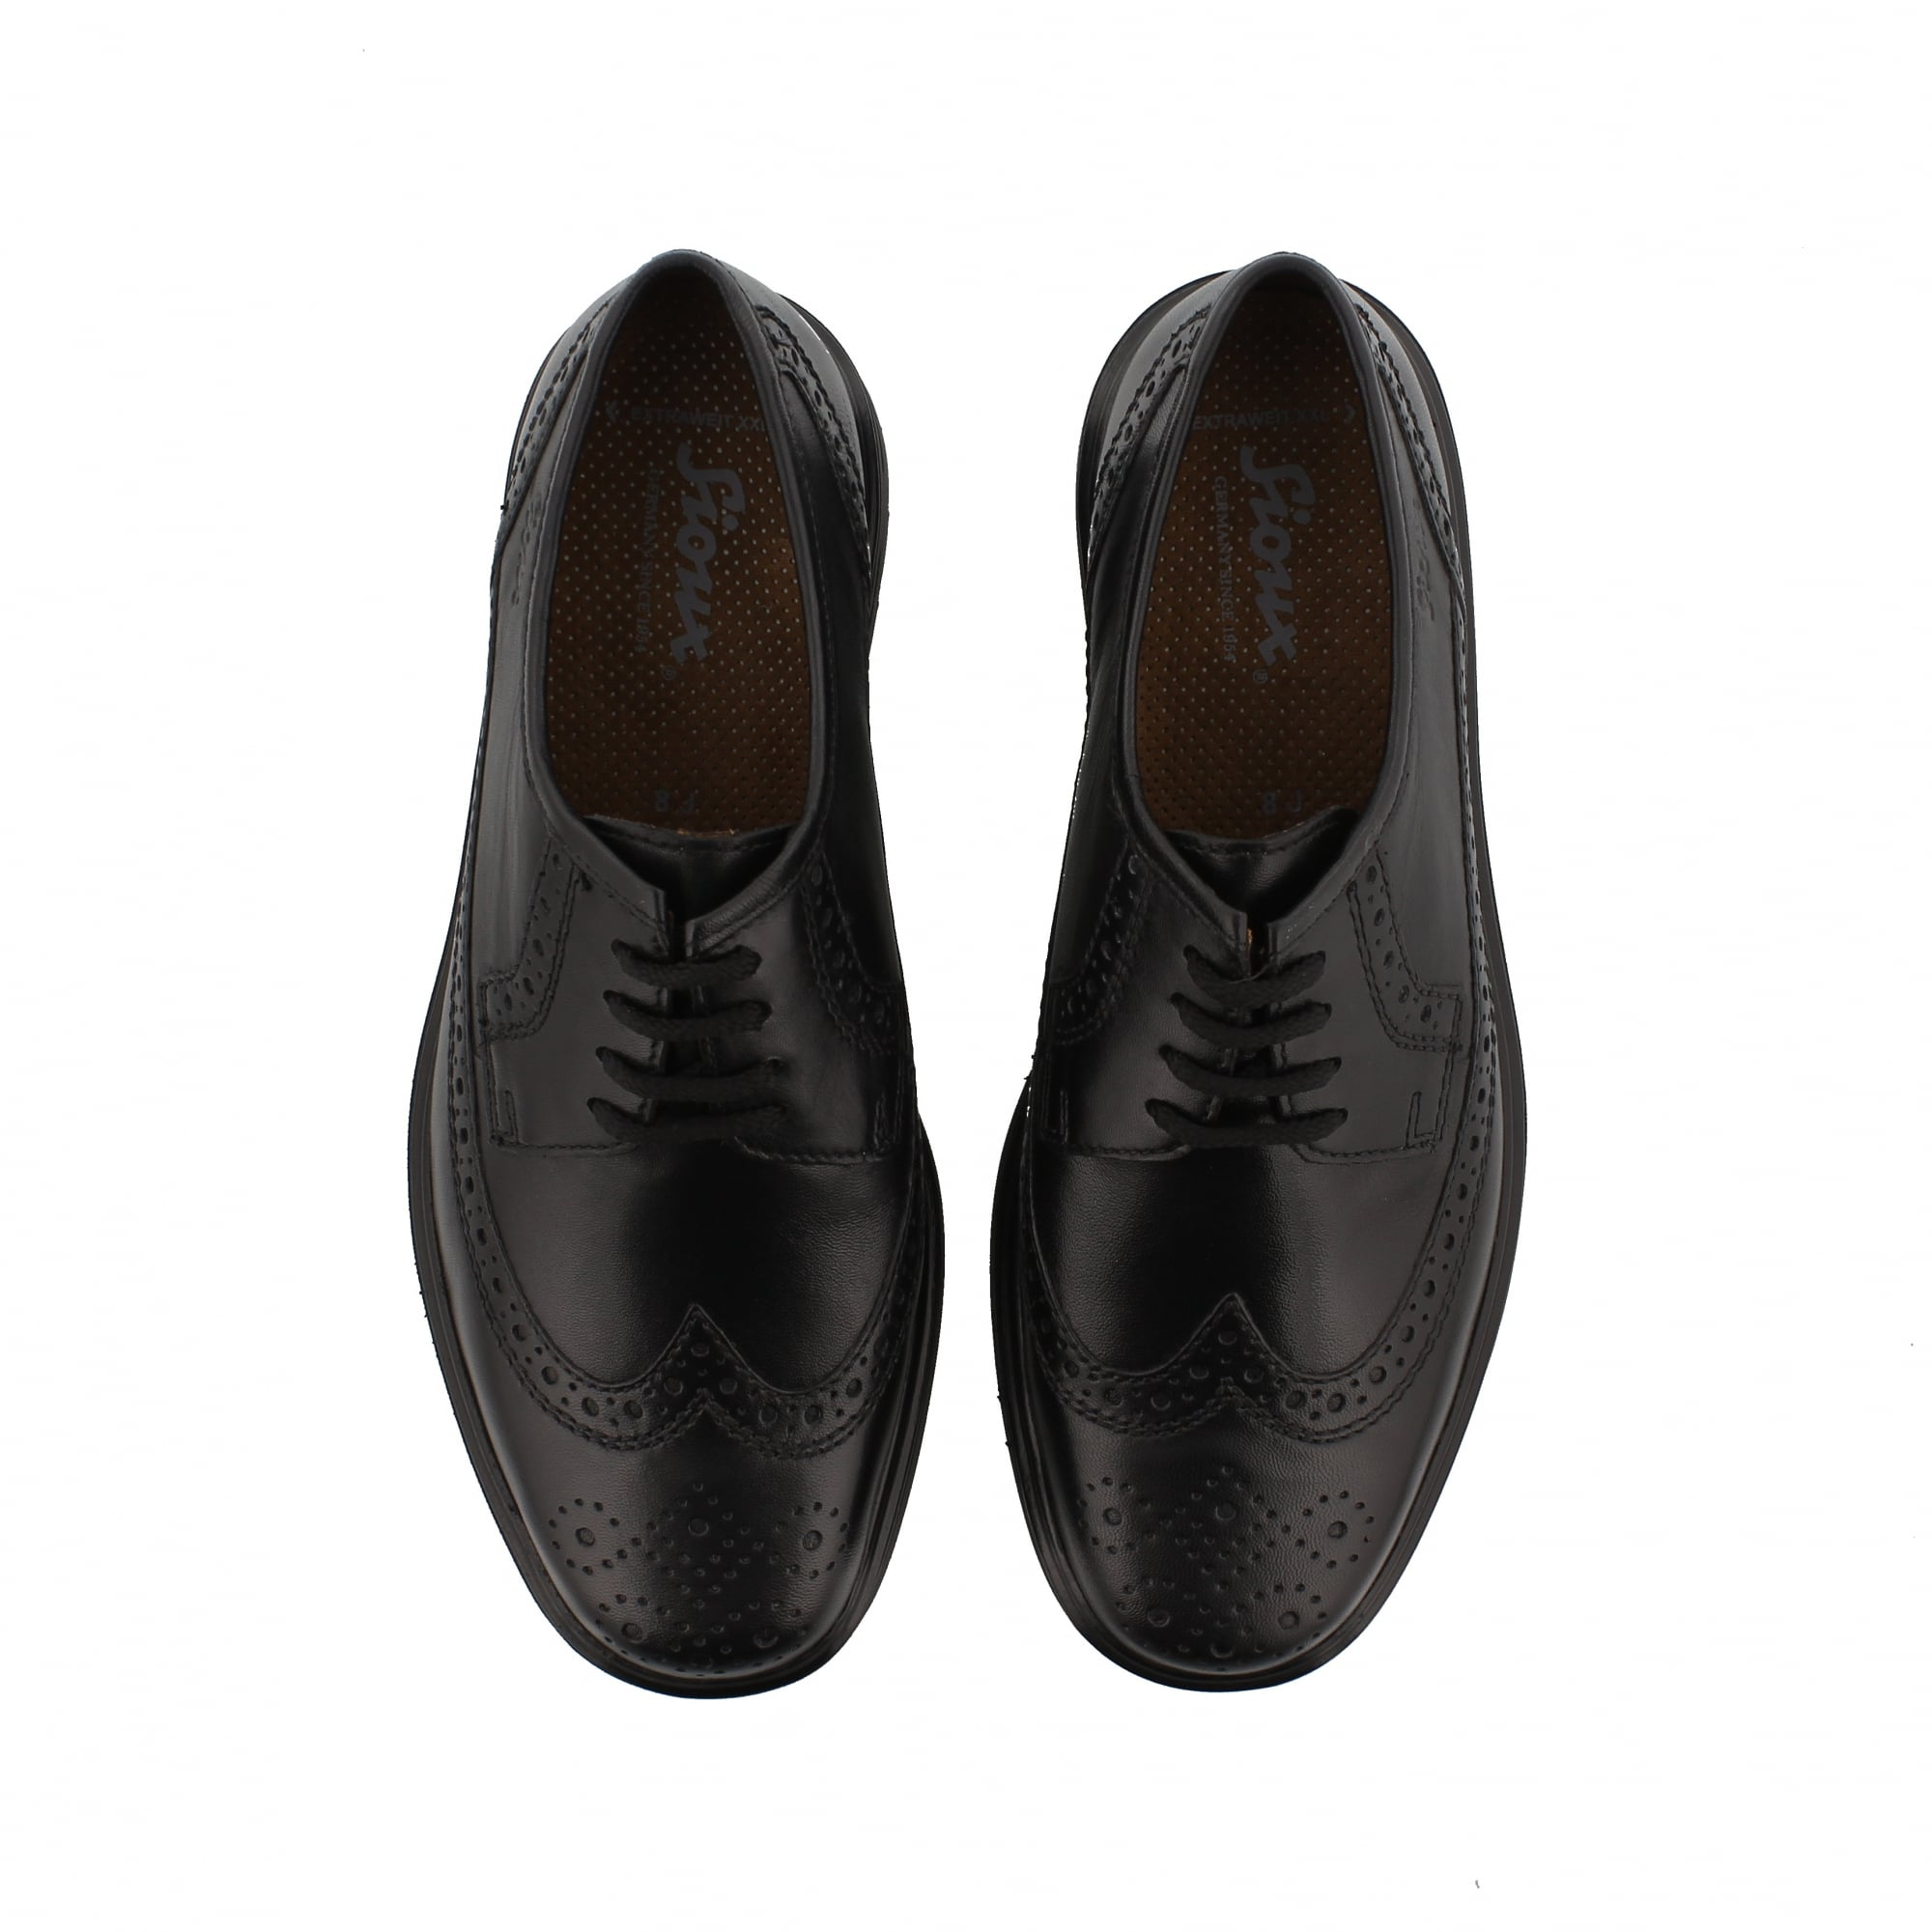 Sioux Pacco | 28446 Mens from Rogerson Shoes UK